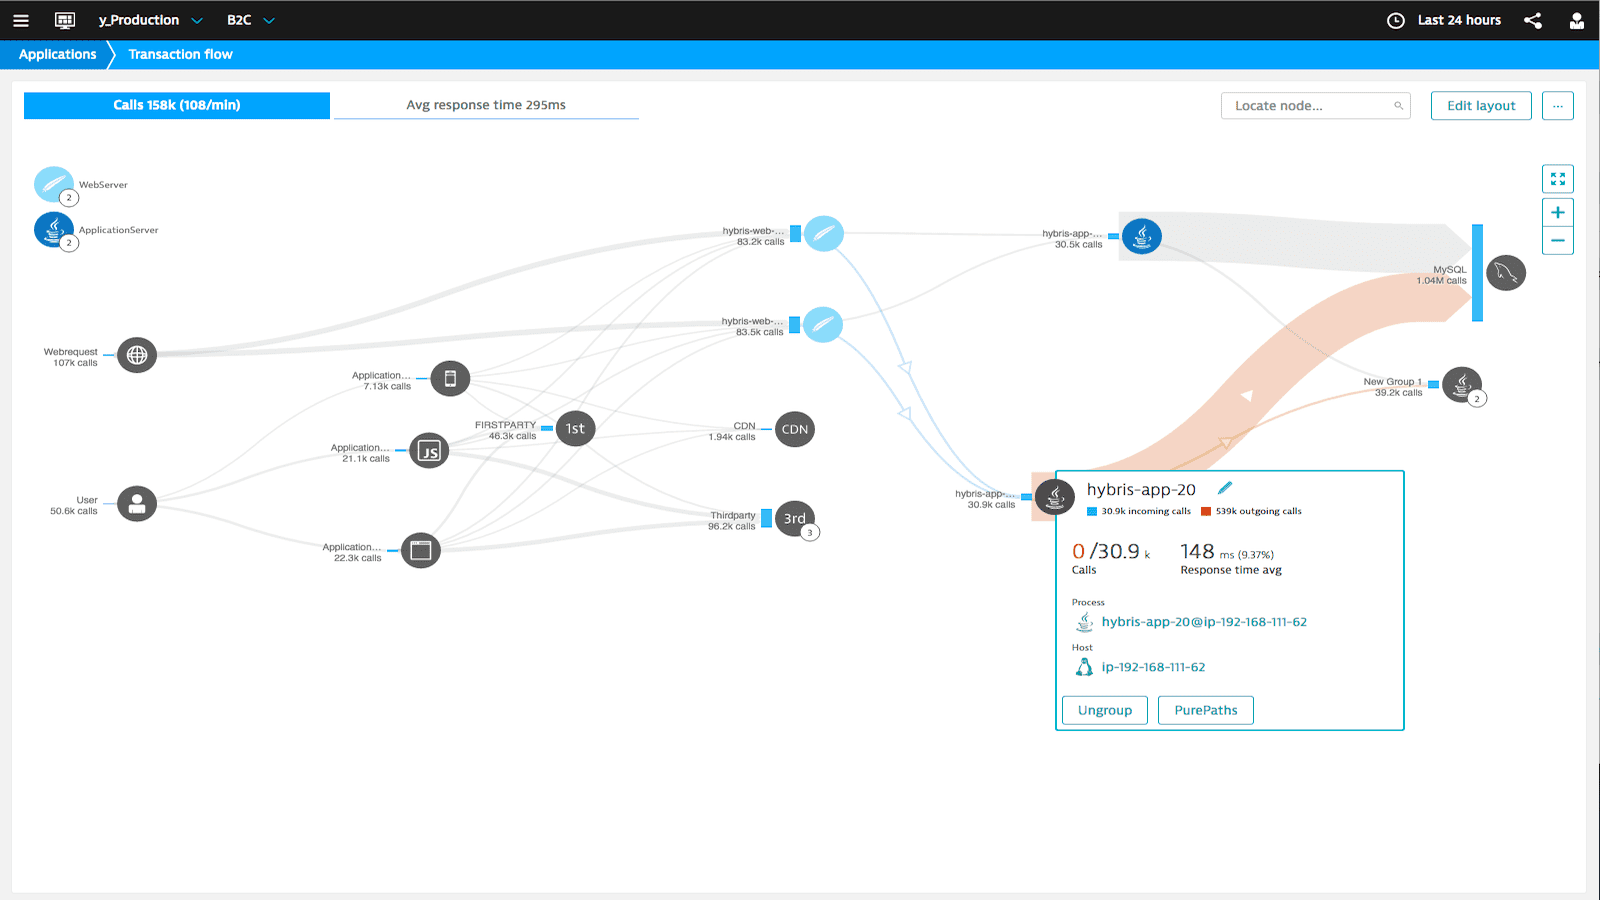 Even the most complex environments will be mapped out nicely by Dynatrace in real time. External services and 3rd party content as well as content delivery networks are detected and their impact on your users is measured accurately.